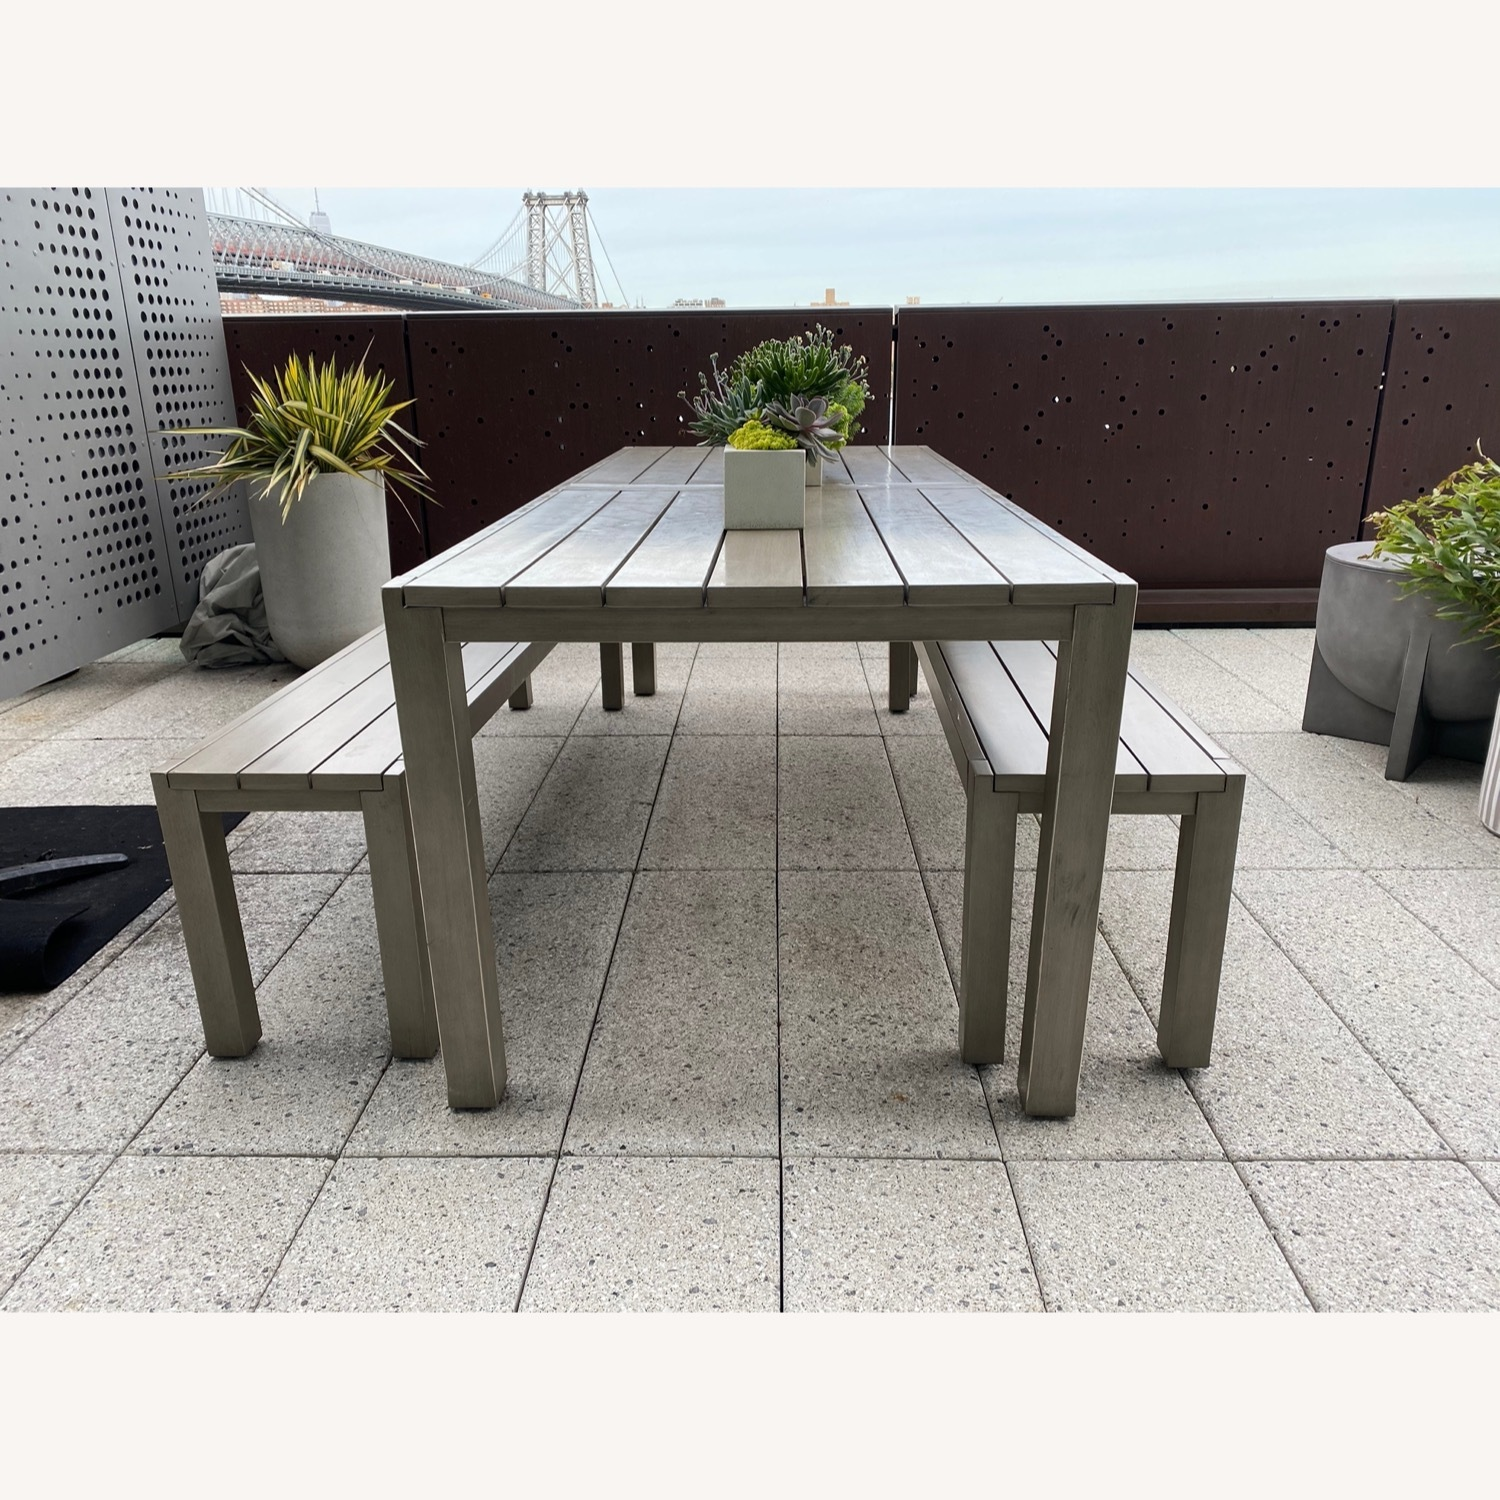 CB2 Matera Outdoor Dining Table w/ benches - image-3